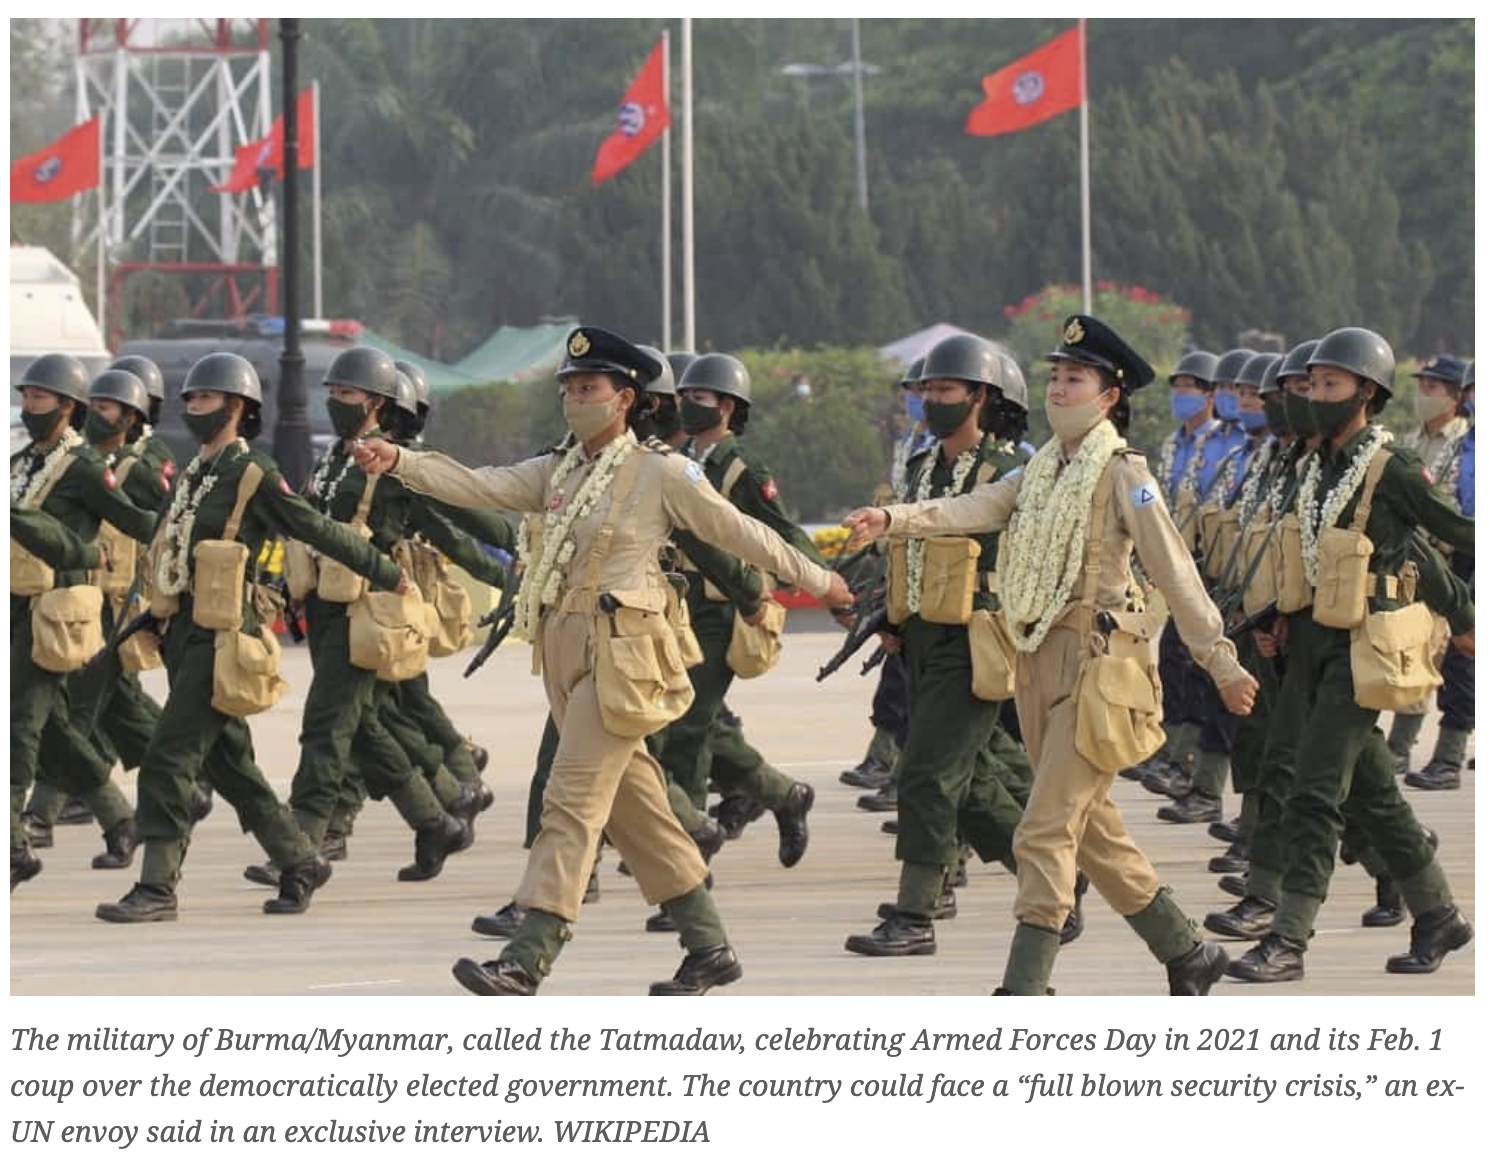 The military of Burma/Myanmar, called the Tatmadaw, celebrating Armed Forces Day in 2021 and its Feb. 1 coup over the democratically elected government. WIKIPEDIA